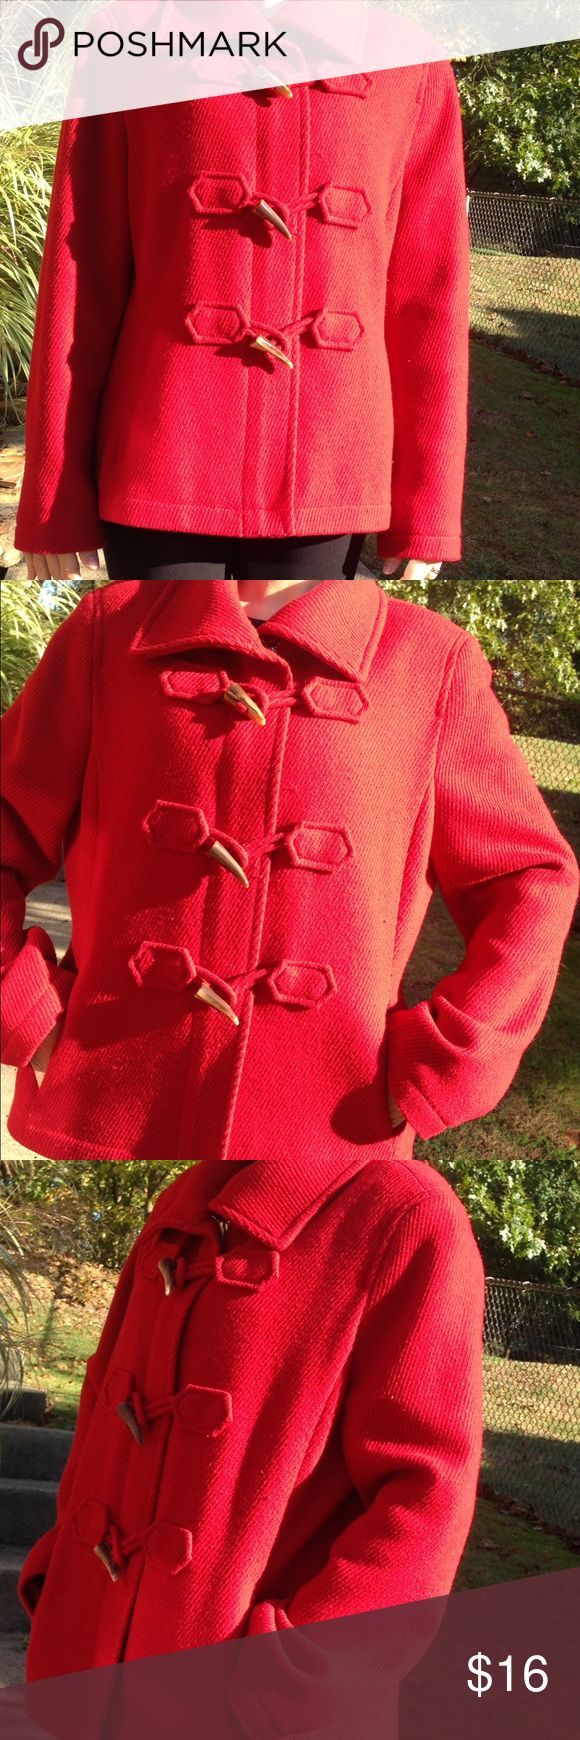 Ann Taylor red Pea Coat Size xl red pea coat by Ann Taylor, zippers up middle, accent toggles, pocket on each side, a deeper red shade, overall ok , good condition, some signs of wear, made with a wool blend, so some natural snags occur thru out coat. No visible stains, no tears, zipper works Ann Taylor Jackets & Coats Pea Coats